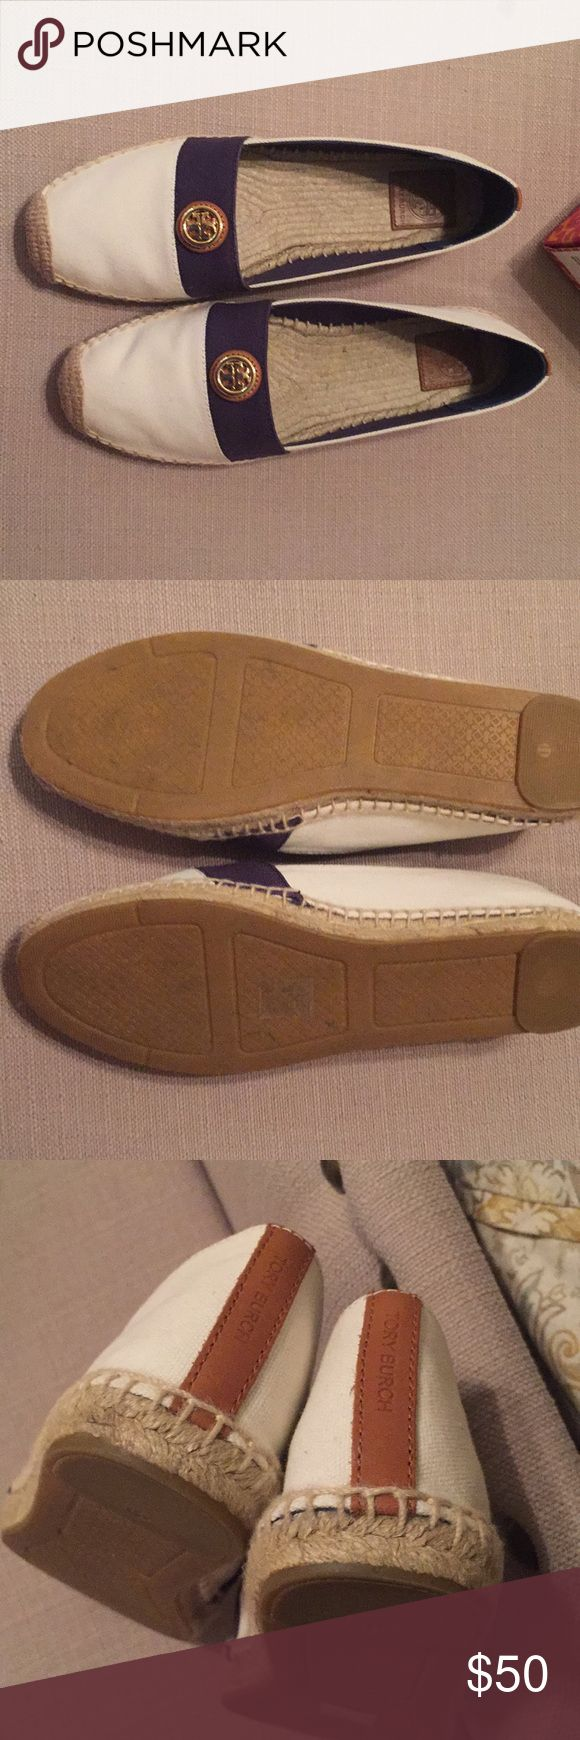 Tory Burch Espadrilles Ivory canvas with tan and Newport navy accents.  Size 11 worm once.  Comes with original box Tory Burch Shoes Espadrilles